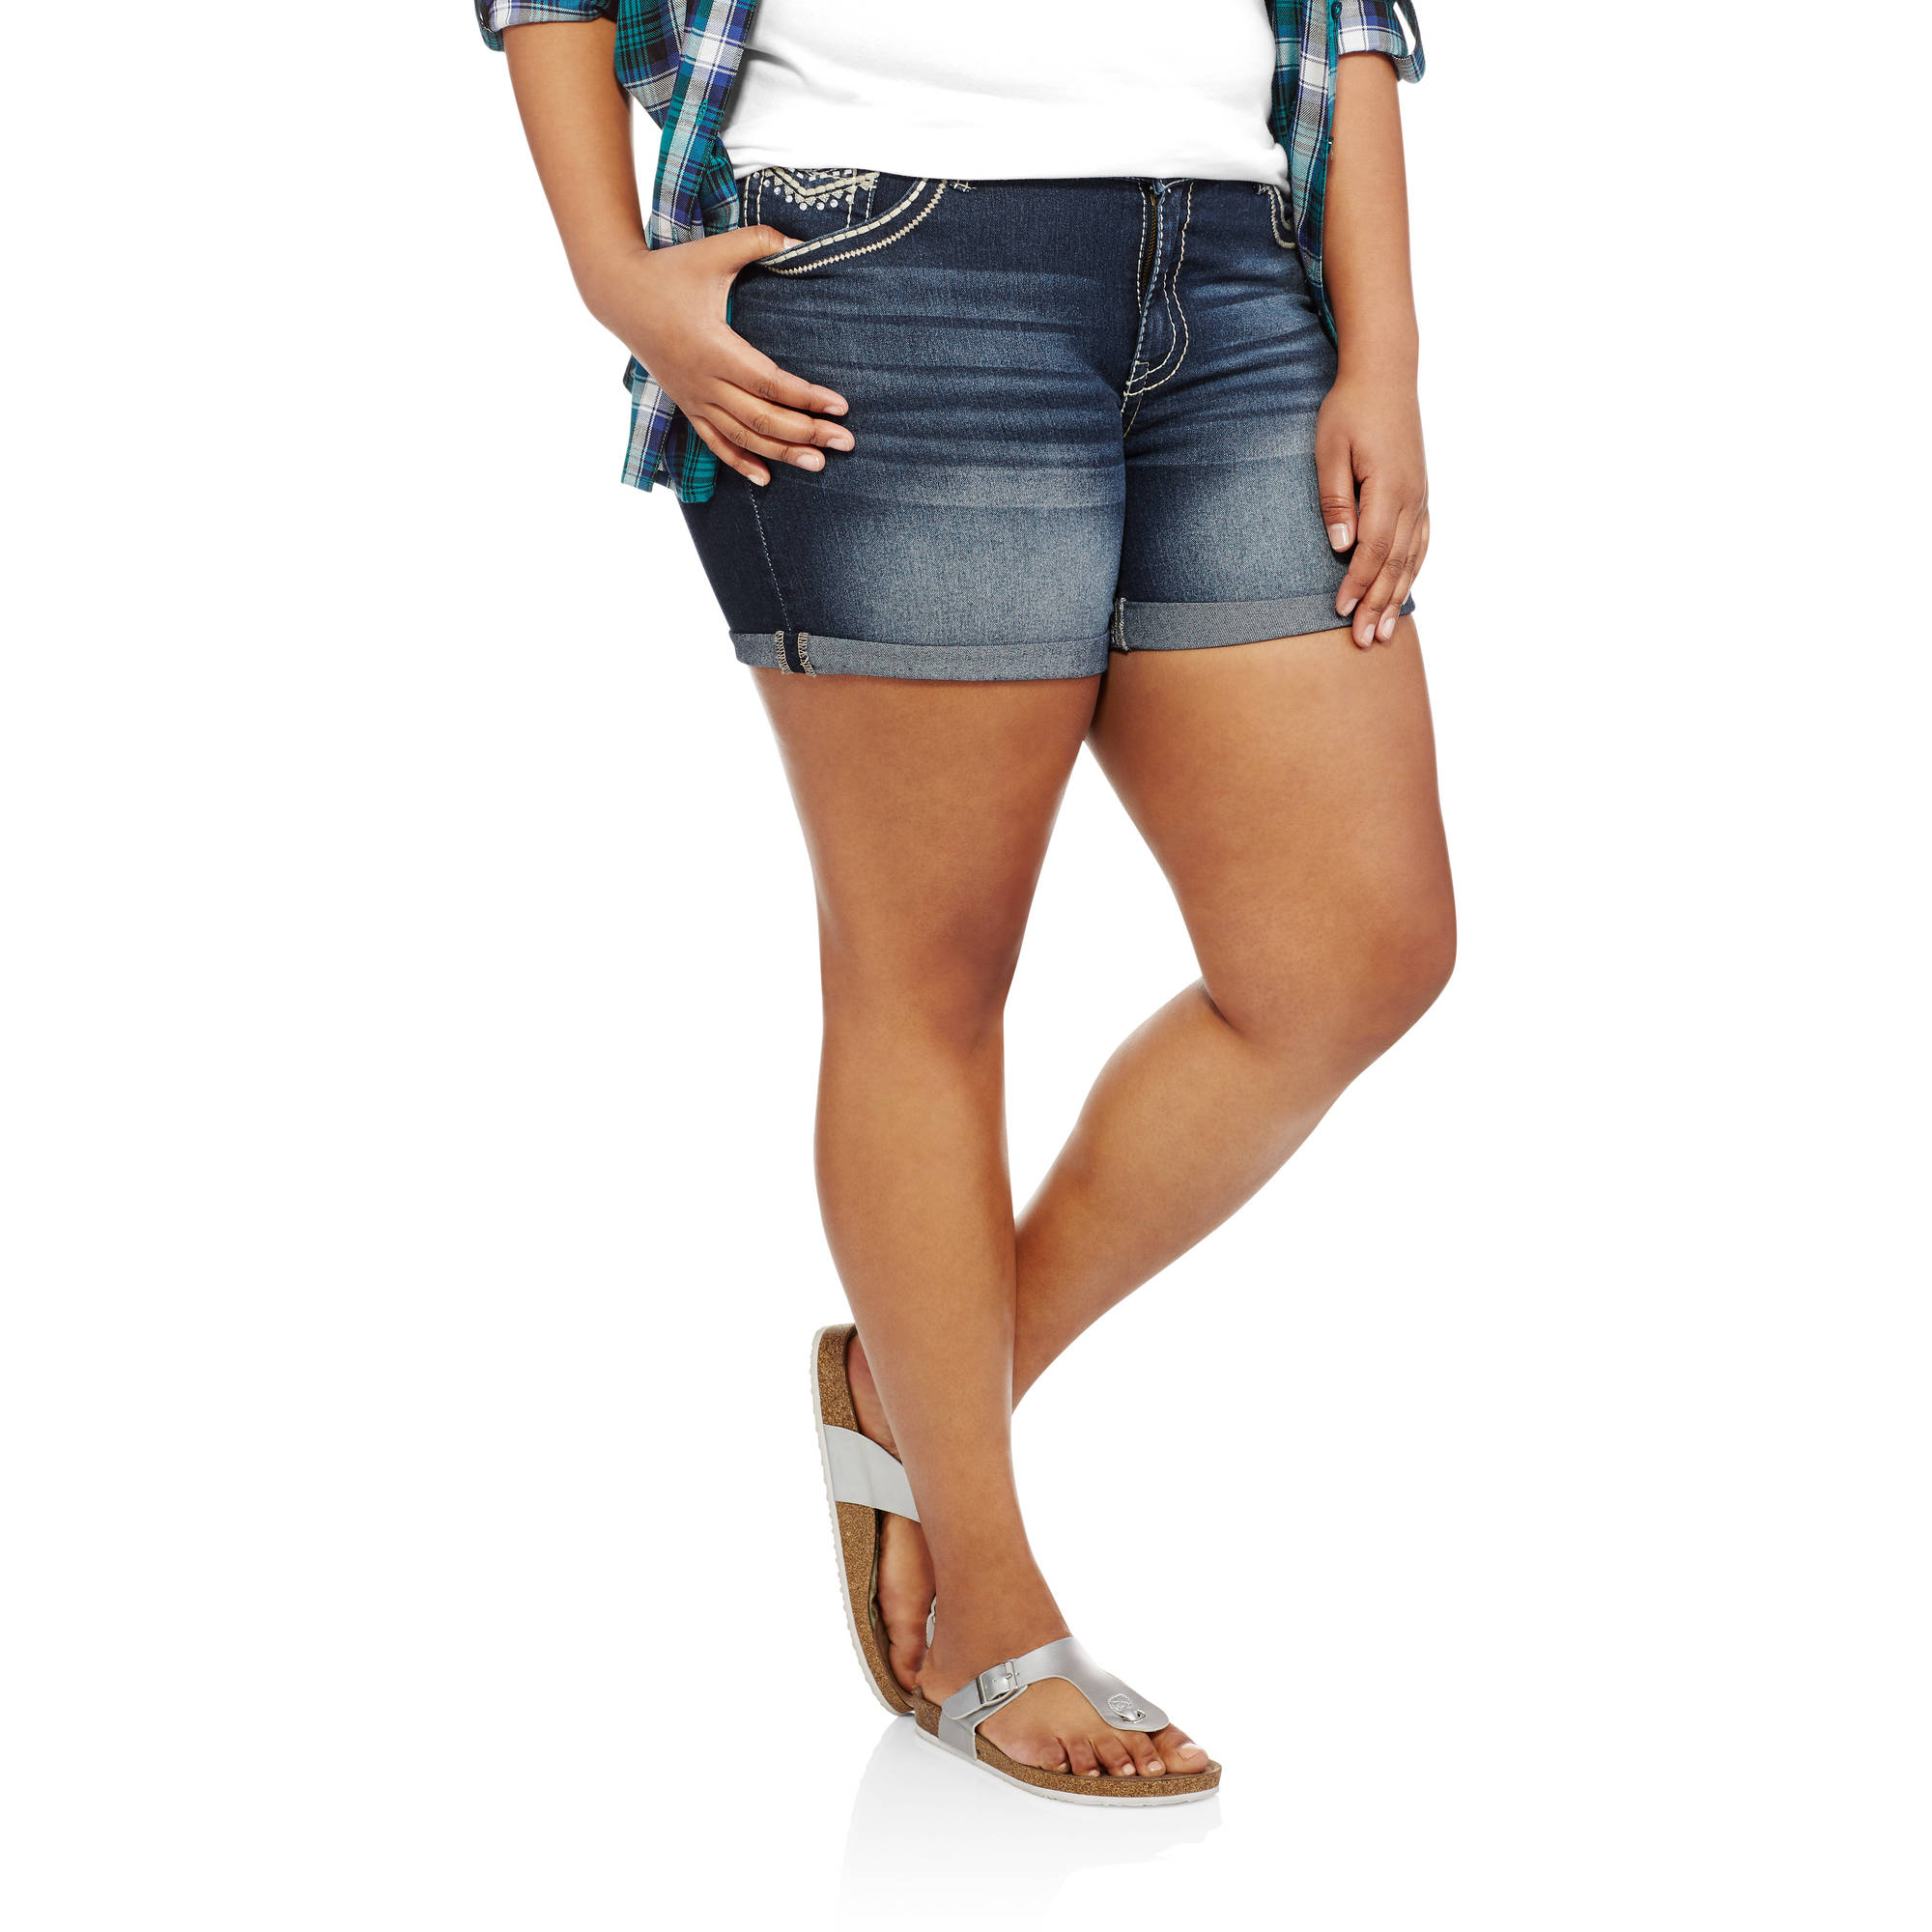 Faded Glory Women's Plus Denim Shorts With Embelishment